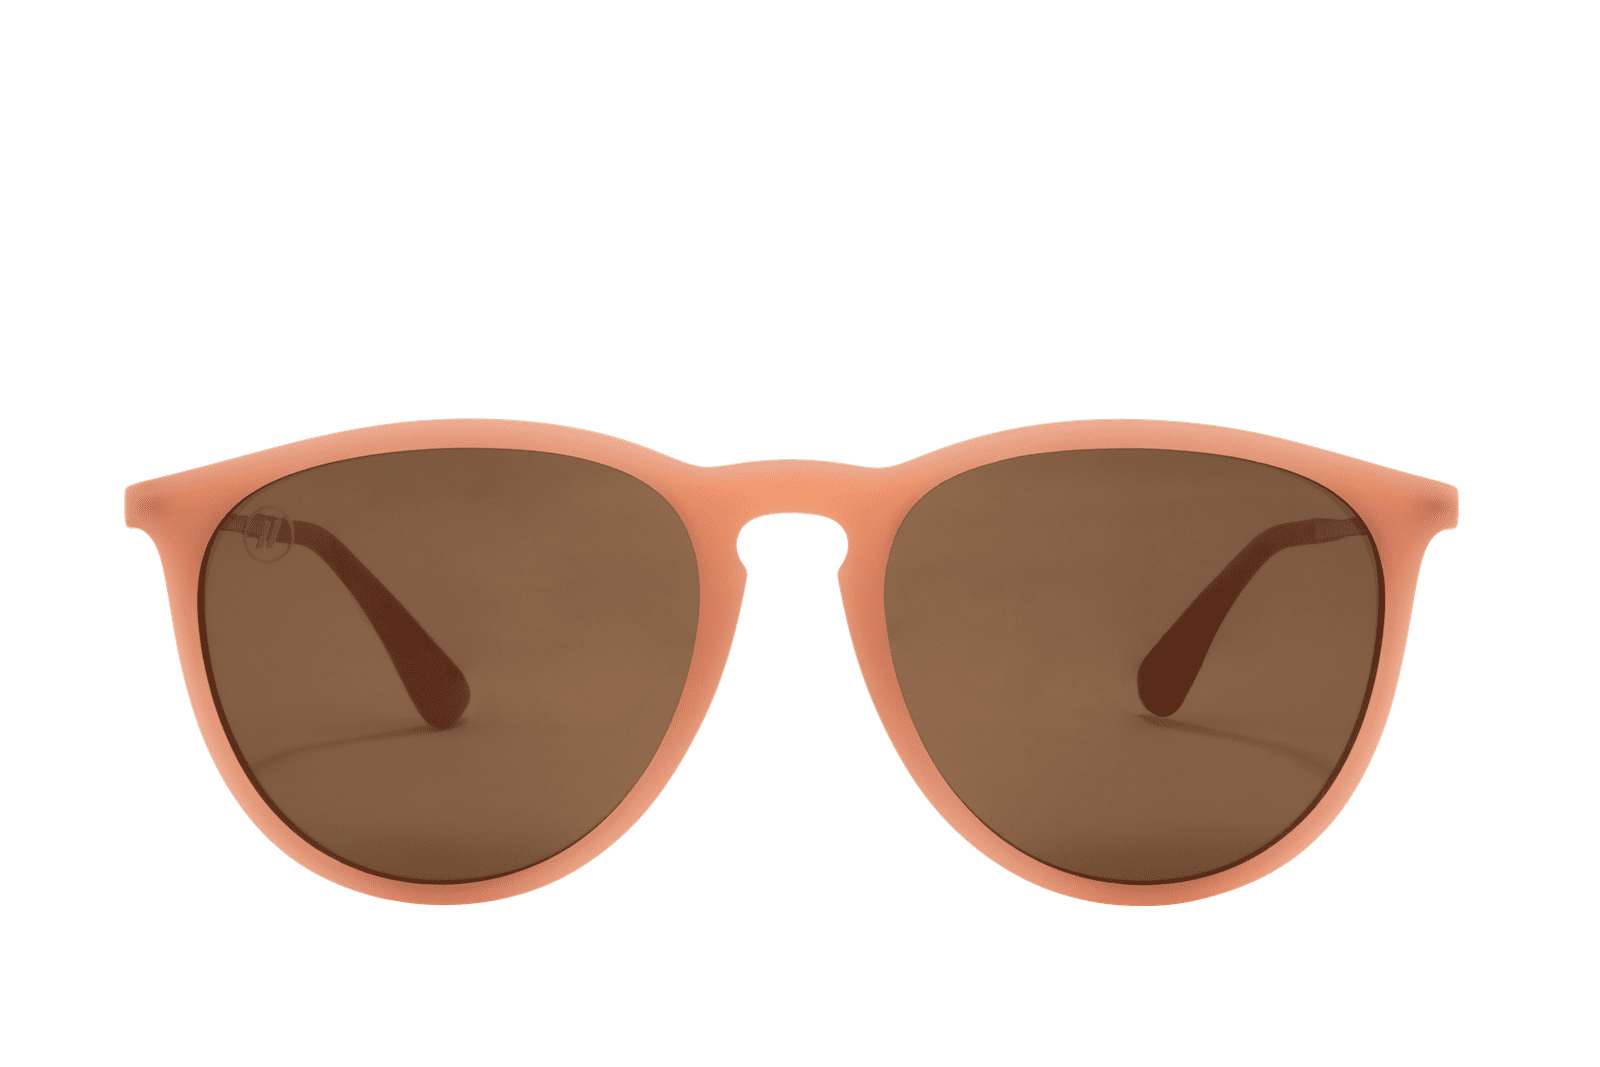 Blenders Eyewear Marley Beach North Park Sunglasses